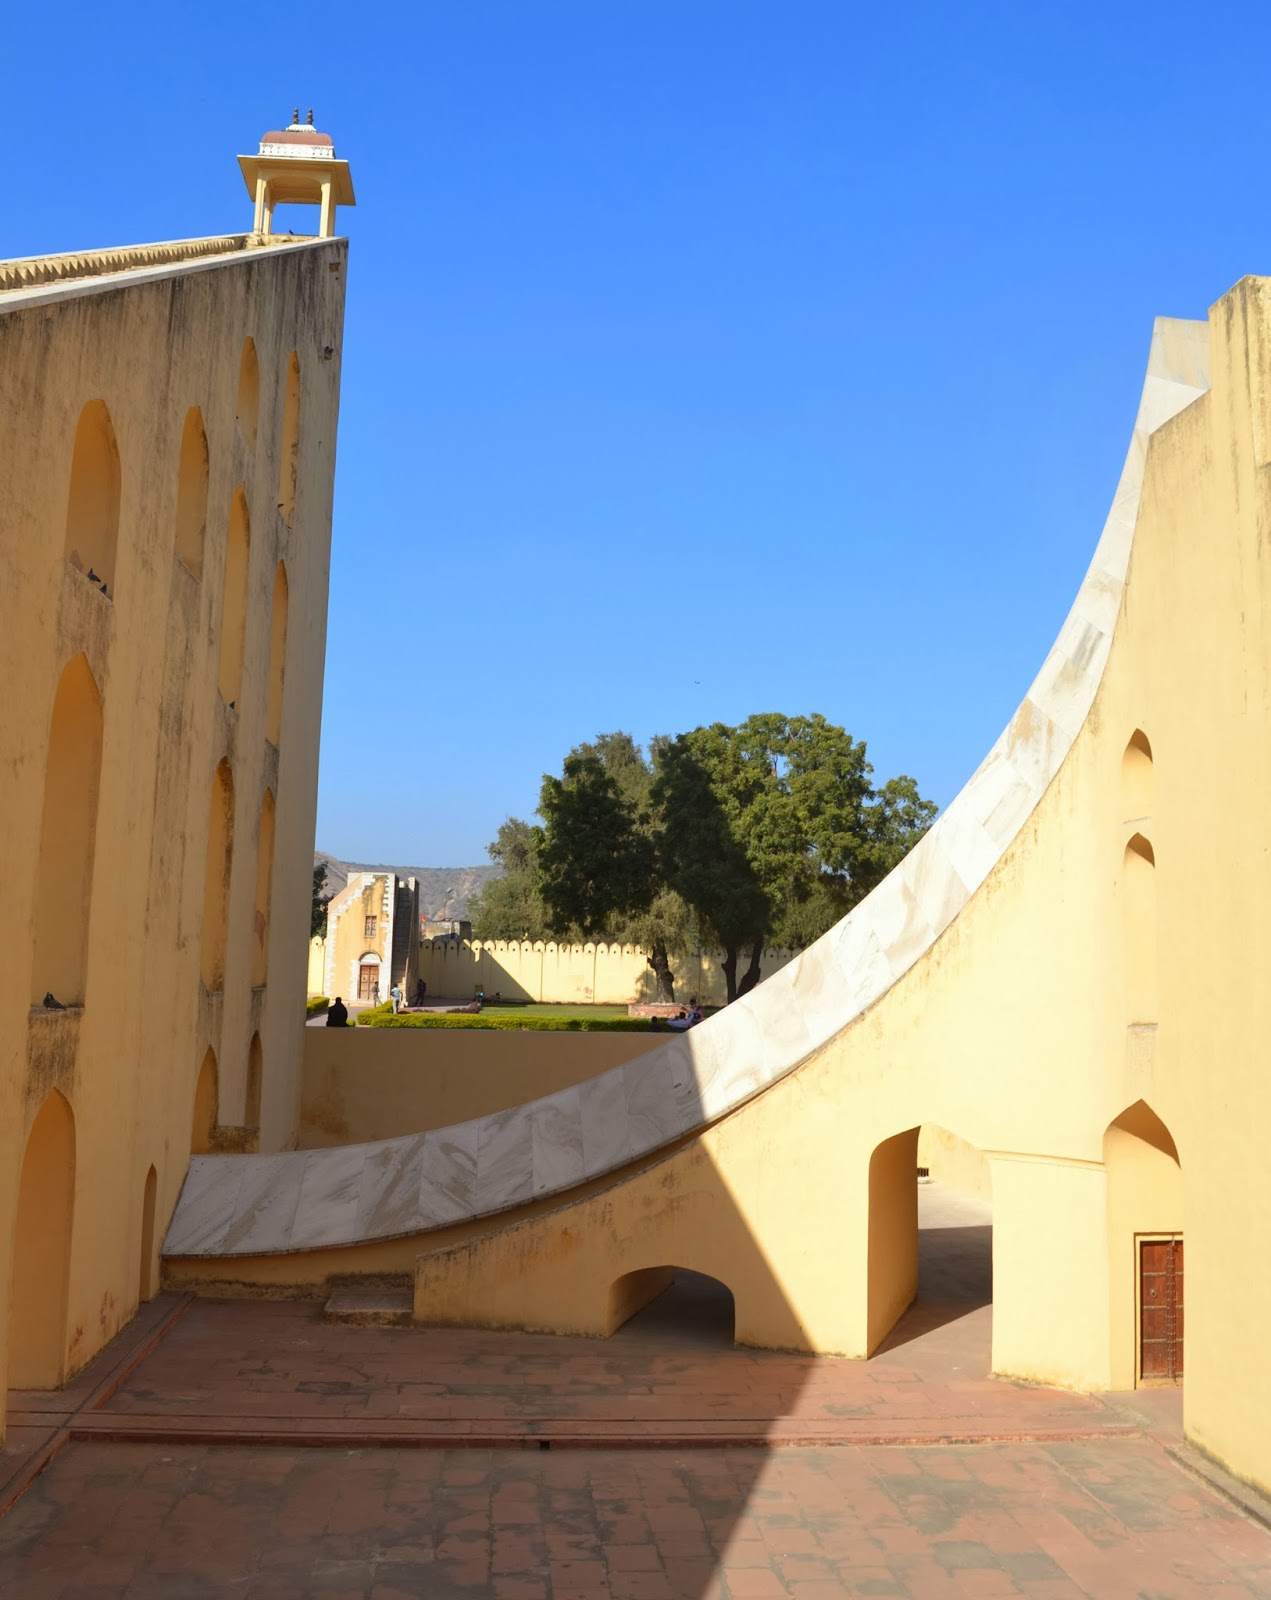 Worlds biggest sundial Jantar Mantar